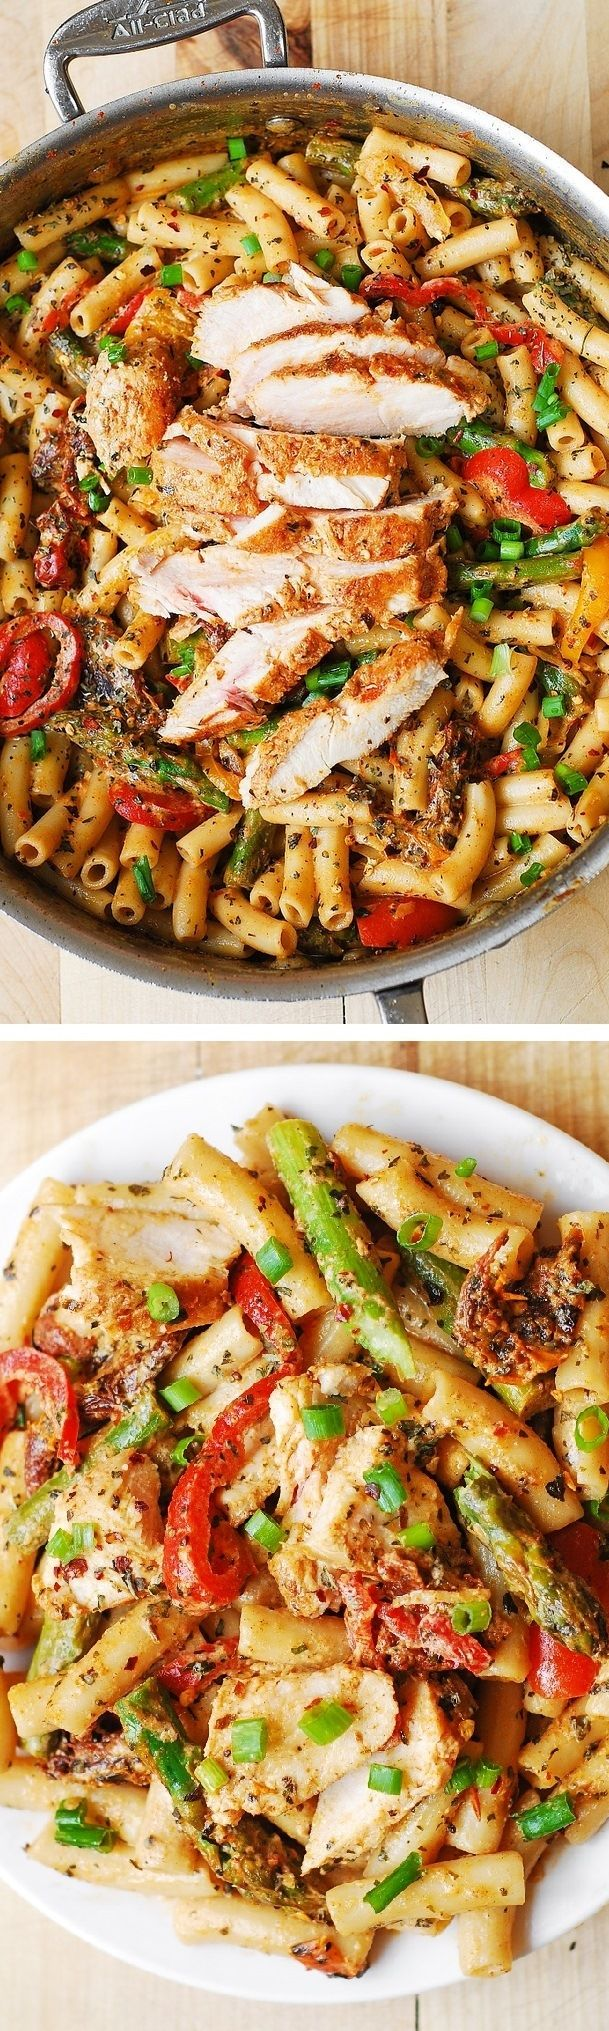 Chicken Alfredo Pasta with Bell Peppers, Asparagus, in a Creamy Sun-Dried Tomato Sauce. Gluten-free friendly recipe - just use gluten-free brown-rice penne pasta!